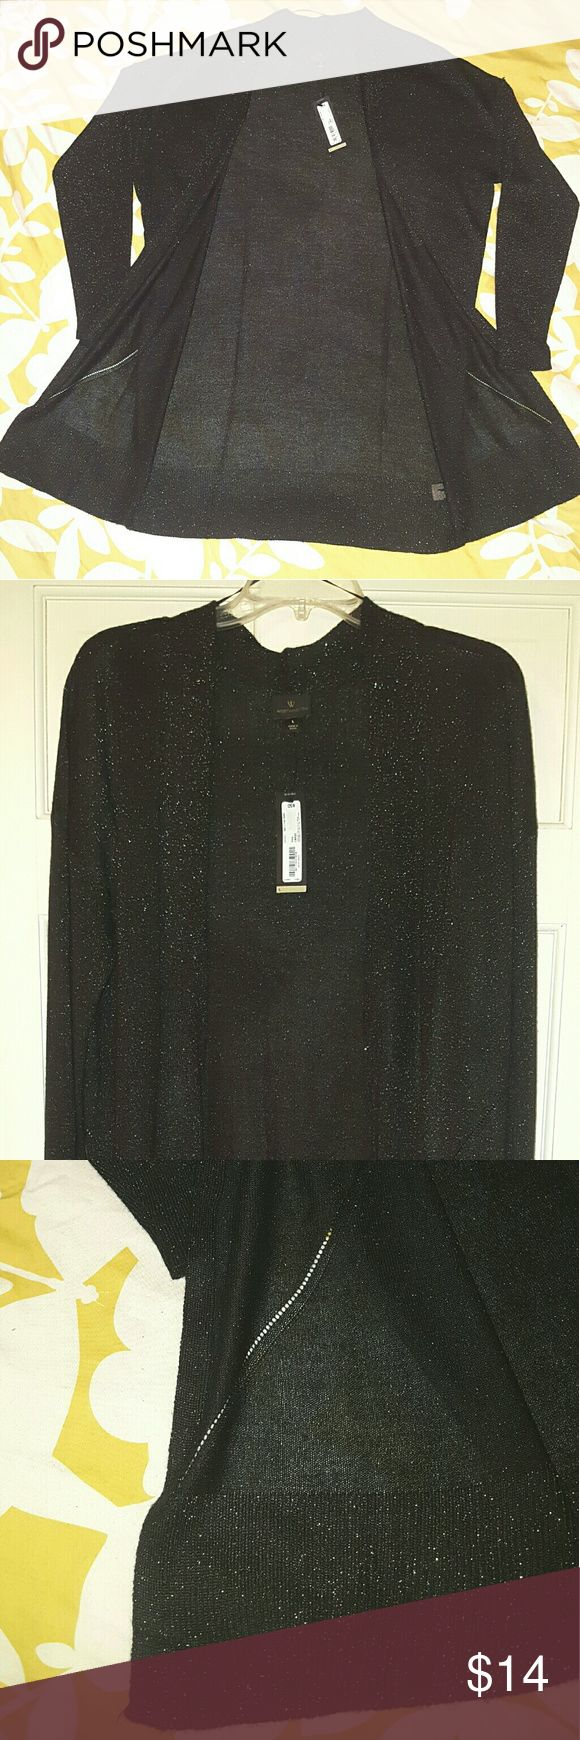 Long Cardigan Sweater w/Metallic Sparkles Long Black Cardigan Sweater w/Metallic Sparkles Size  -  Large Length (from shoulder to hem)  -  35 inches Long Sleeves NWT  -  No Flaws Worthington Sweaters Cardigans